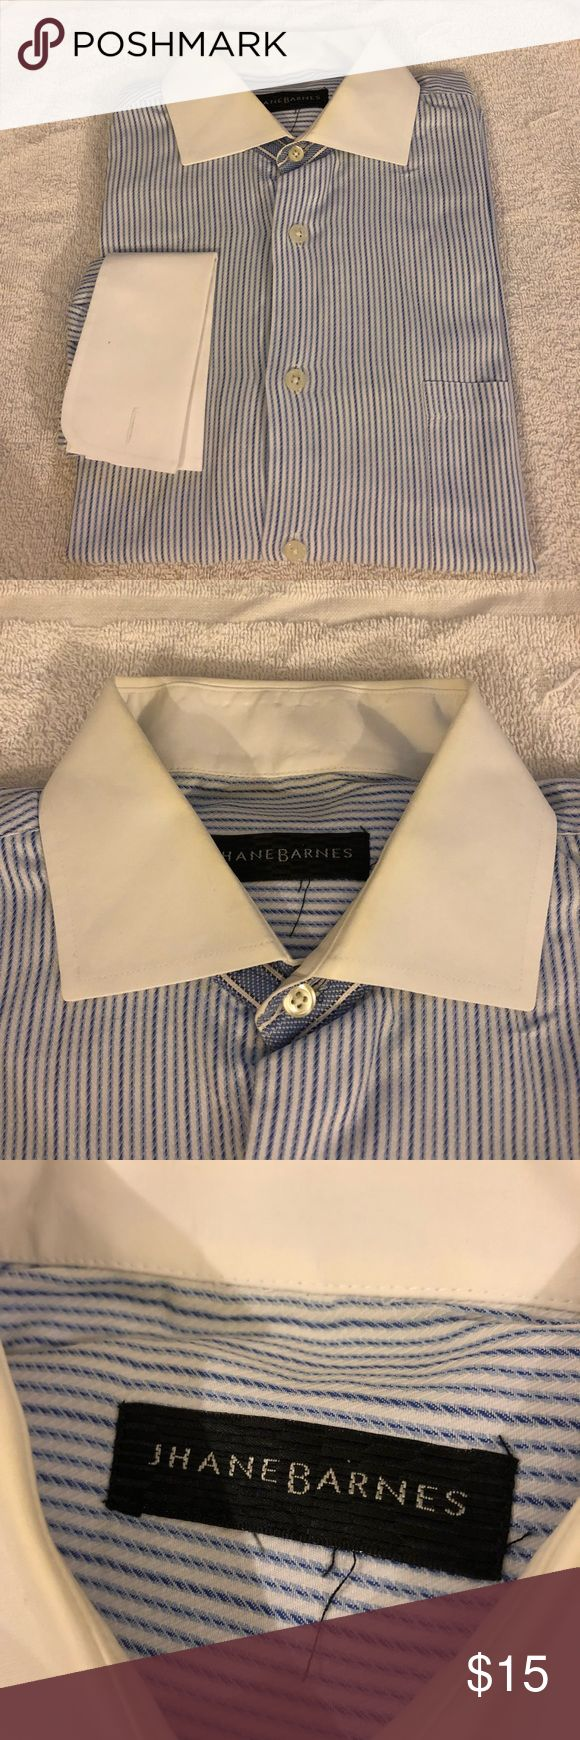 Jhane Barnes White Stripe French Cuff Shirt 16 Jhane Barnes White with Blue Stripe White Collar French Cuff Dress Shirt size 16 34/35! Great condition!  Please make reasonable offers and bundle! Ask questions :) Jhane Barnes Shirts Dress Shirts